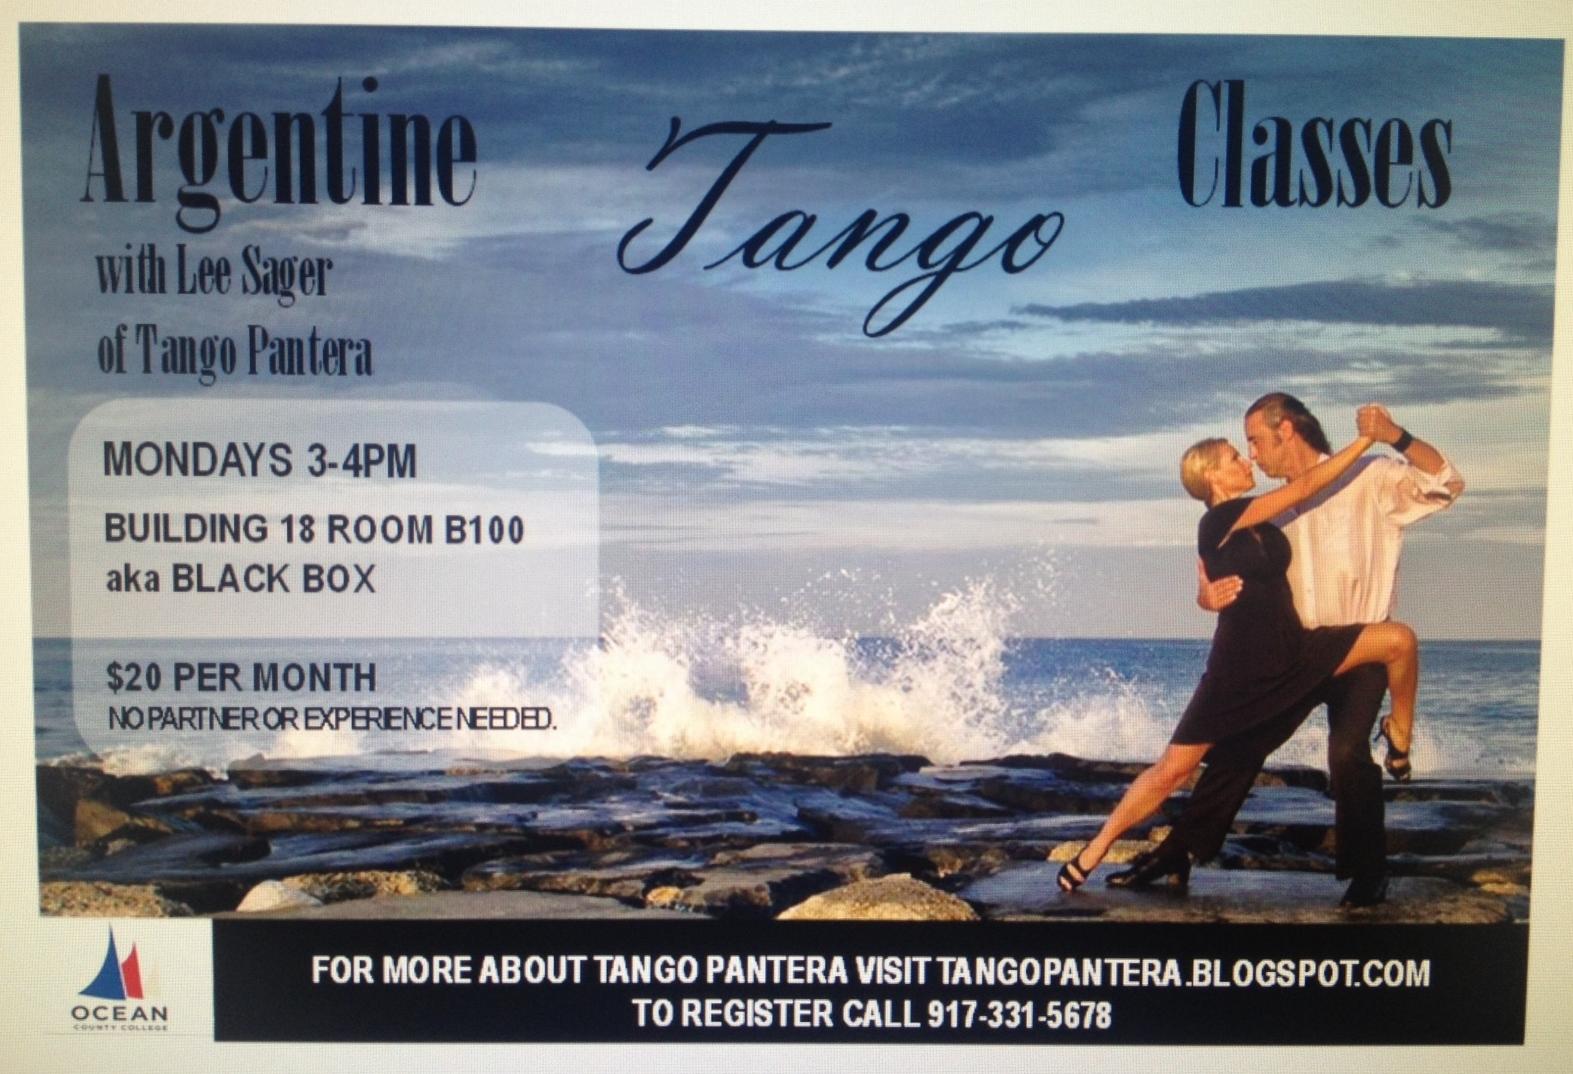 Tango Pantera Ocean County College  Pantera. Ri Health Insurance Plans Cash Loans For Cars. Renters Insurance Prices Esop Retirement Plan. Cooking Schools In Florida Sales Tax Courses. Garage Doors Columbus Ohio Itraxx Main Index. What Is Family Medical Leave Act. Small Business Cloud Accounting Software. Cold Turkey Quit Smoking Synology Snmp Server. Aarp Insurance Providers Max Ira Contribution